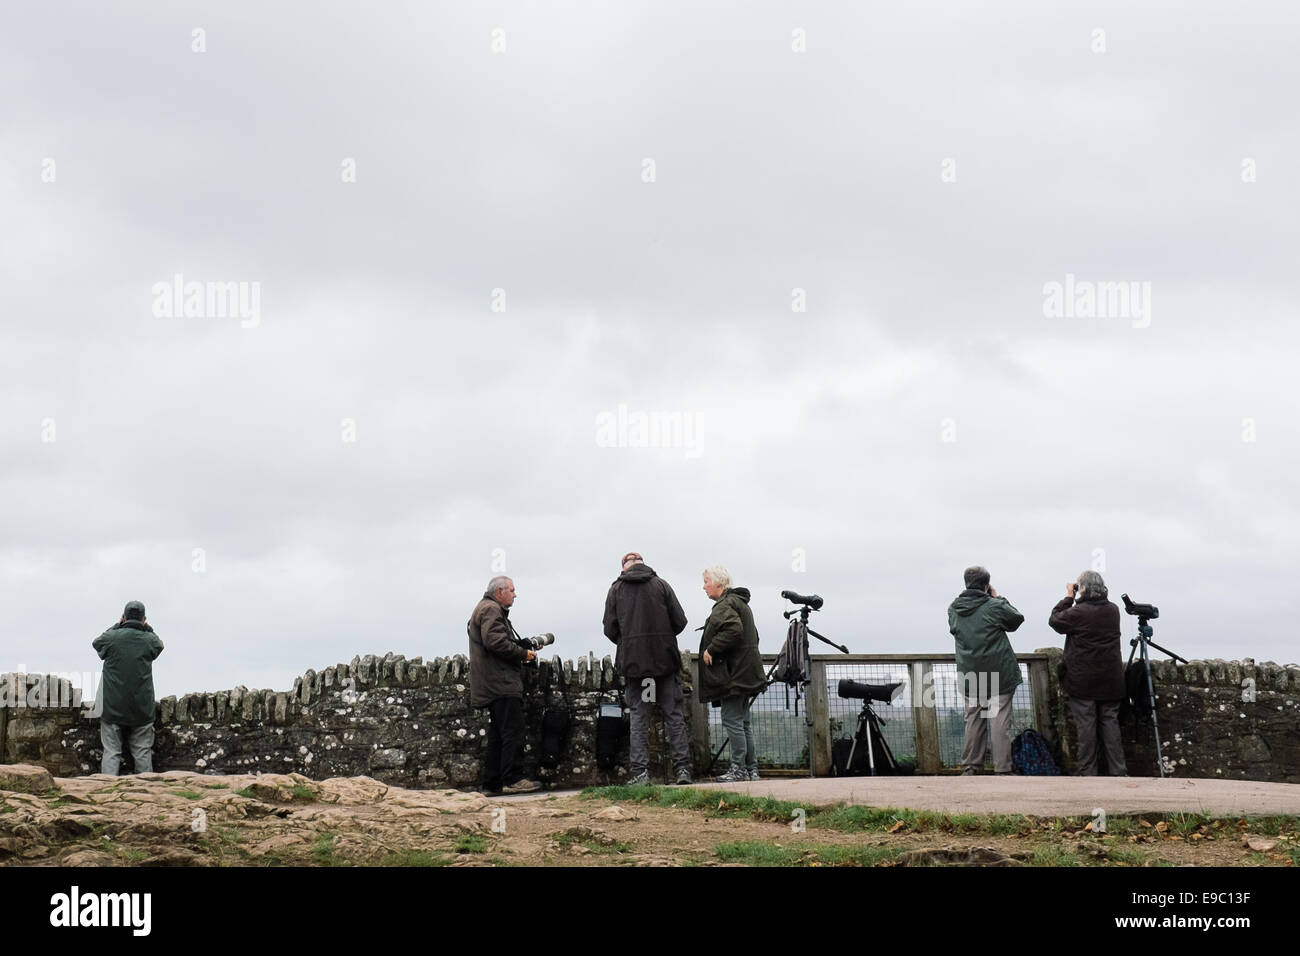 Bird watchers at symonds yat - Stock Image